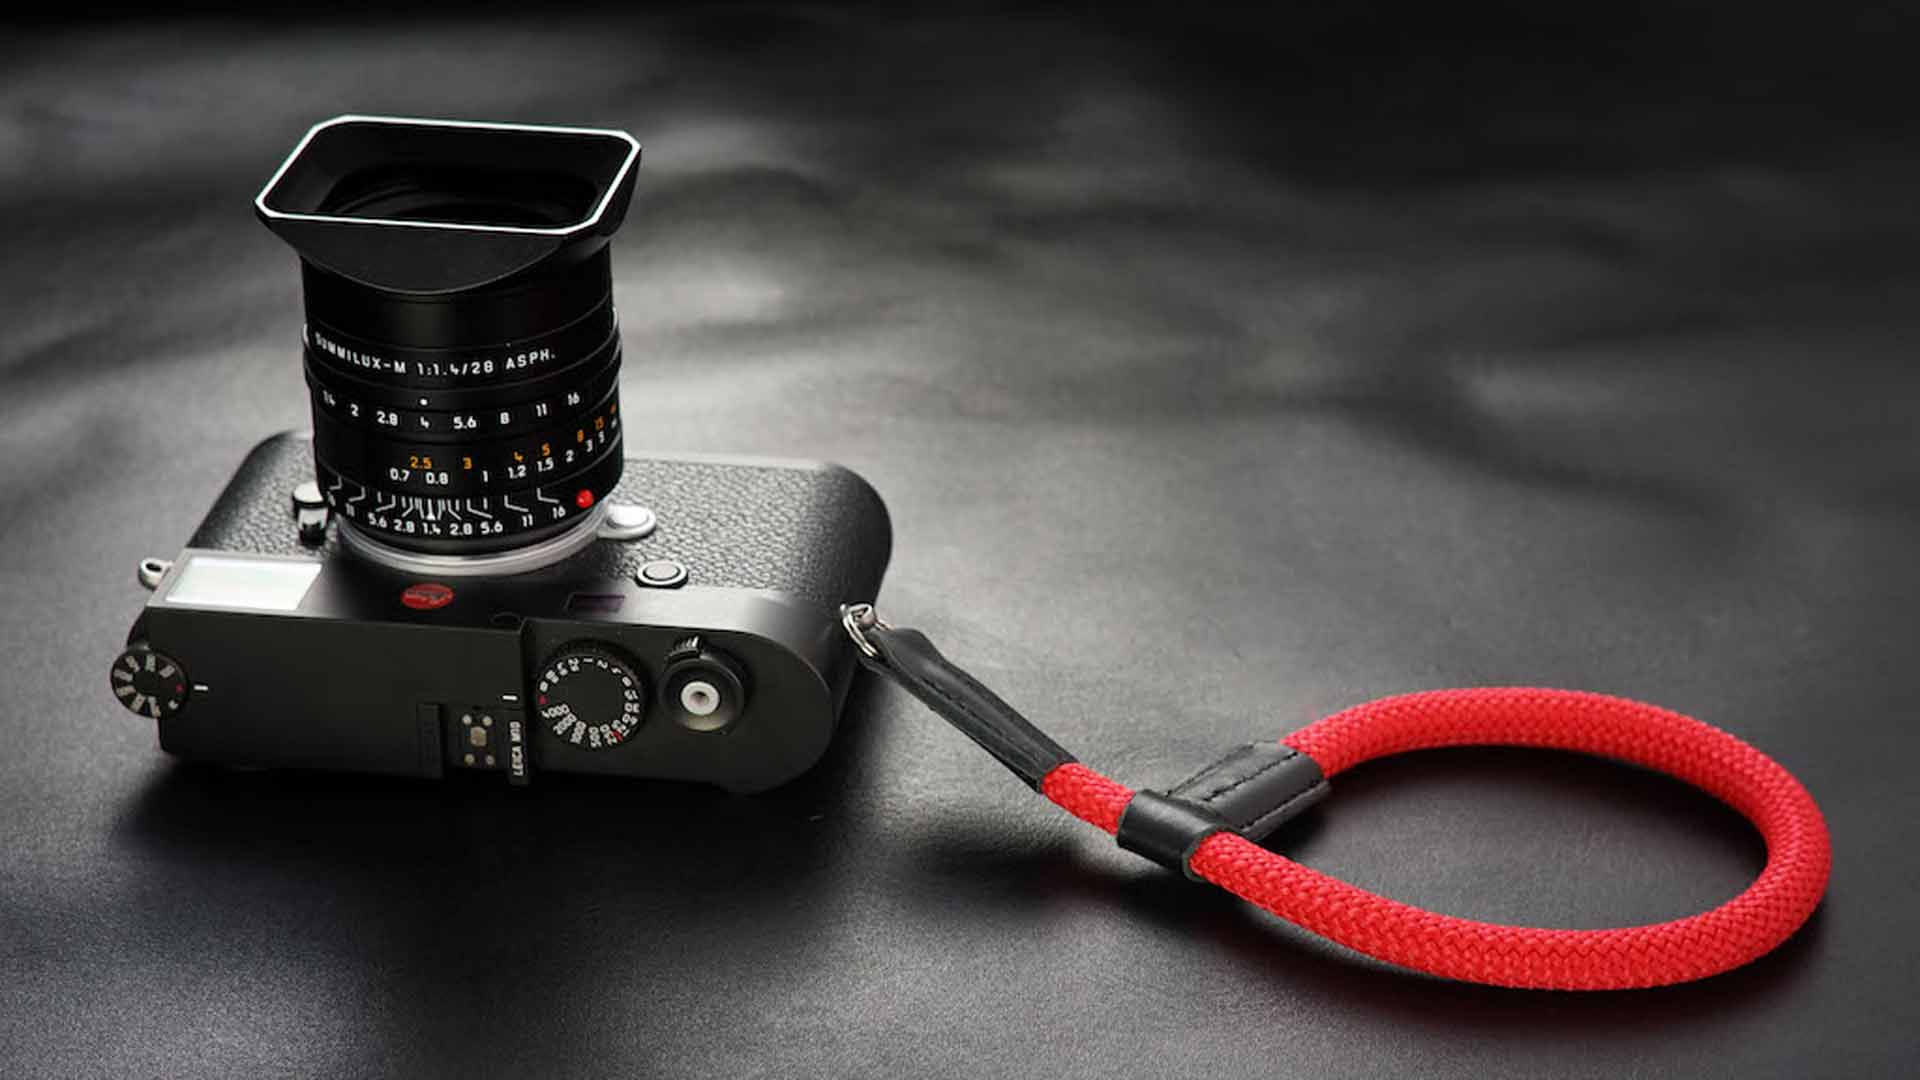 wrist straps, camera wrist strap, camera wrist straps, camera hand straps, best wrist straps, best camera wrist strap, best camera hand straps, dslr wrist strap, wrist straps for camera, best camera wrist strap, camera leather wrist strap, best camera wrist straps, dslr camera wrist strap, red wrist strap